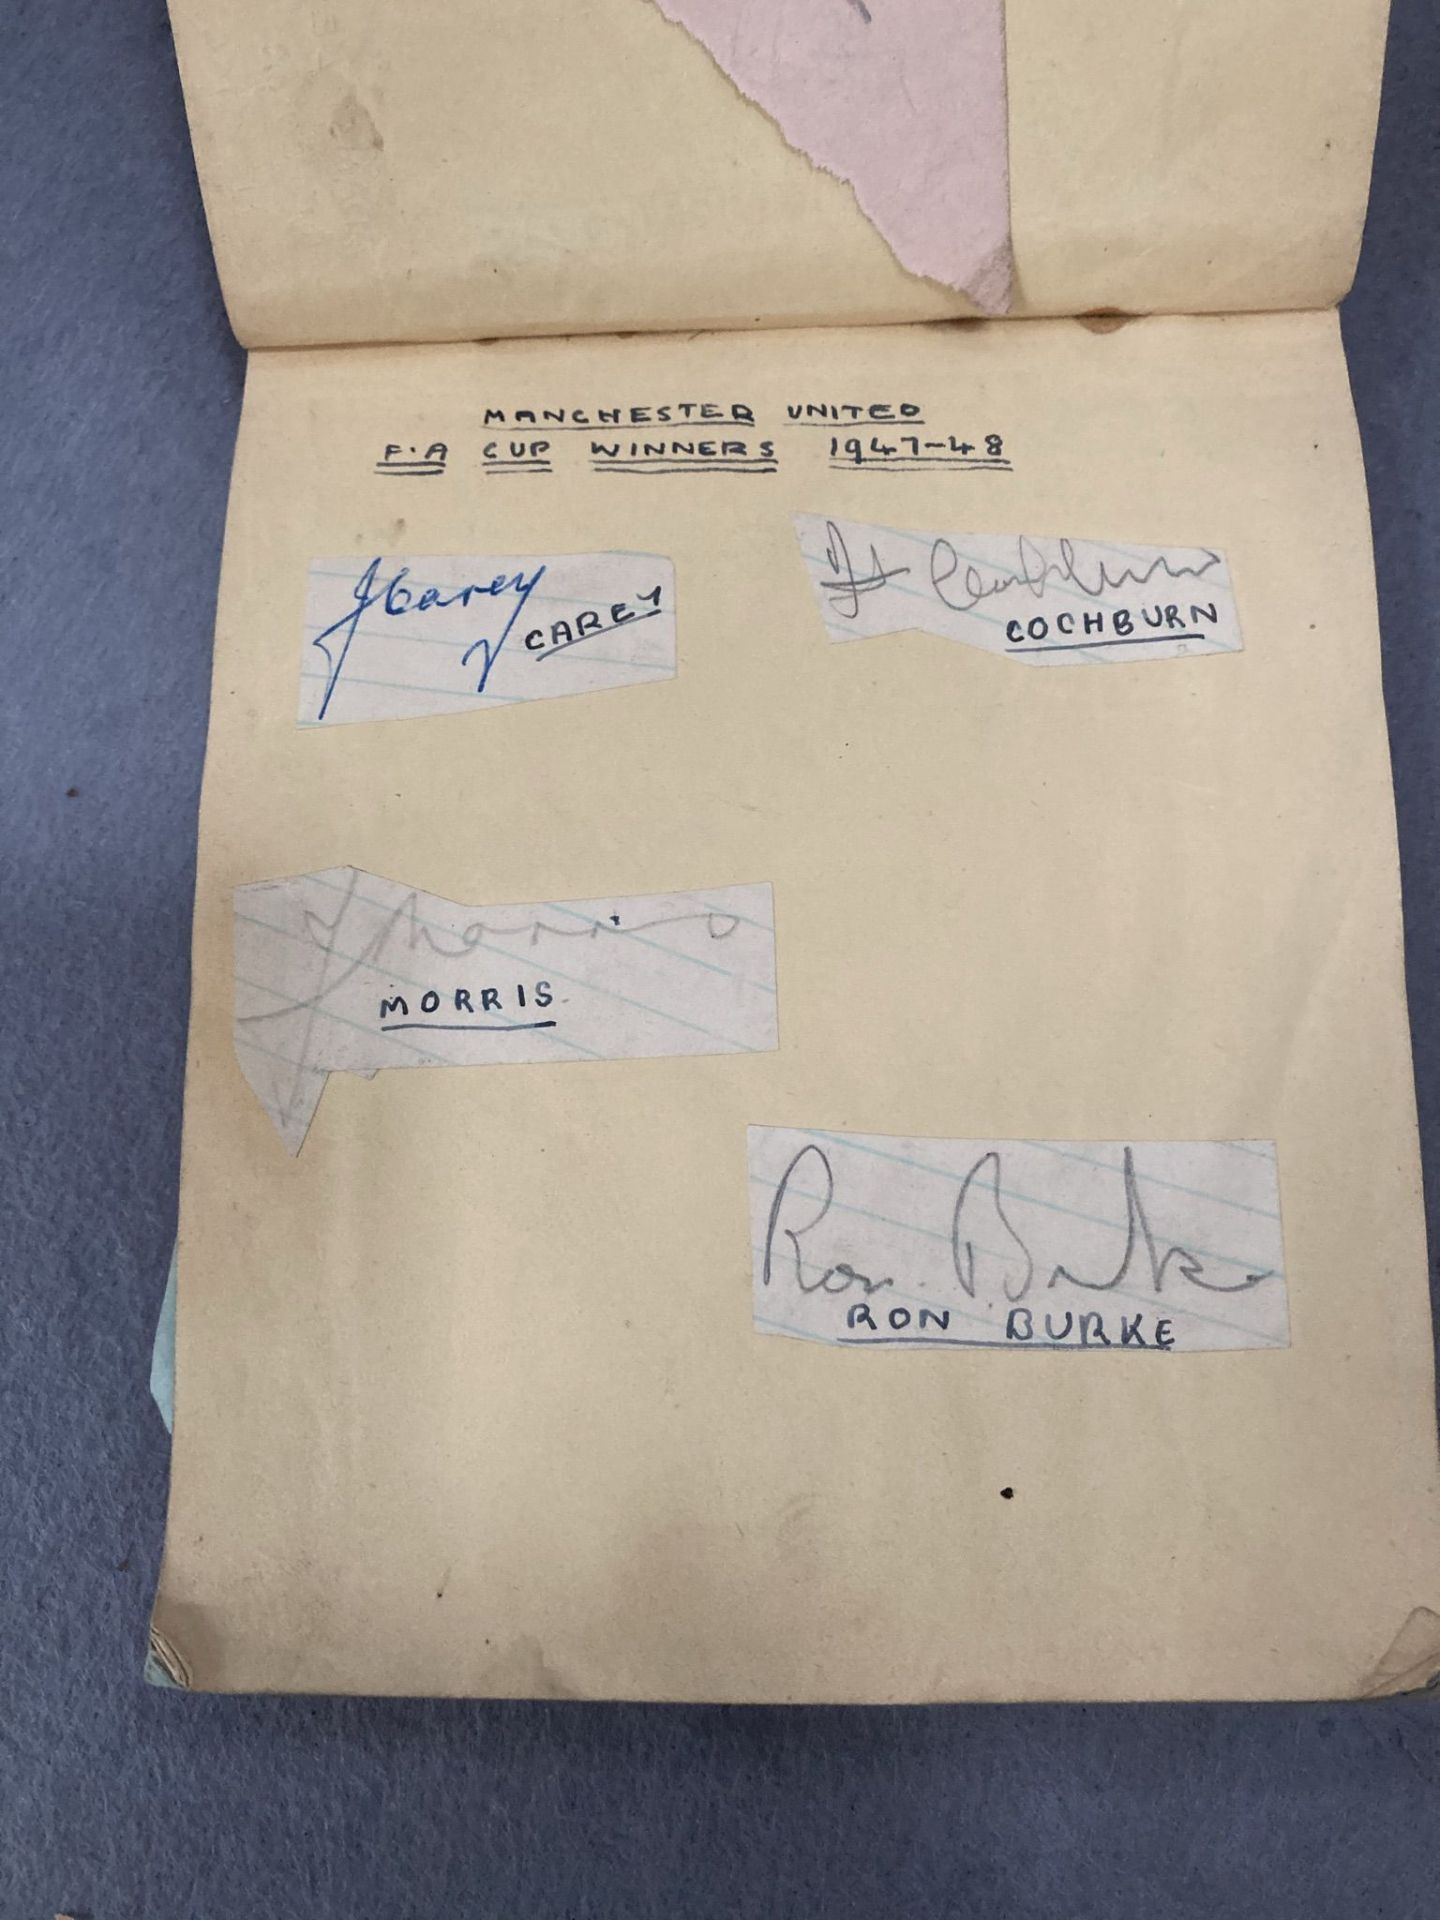 An autograph book, badly distressed, - Image 2 of 5